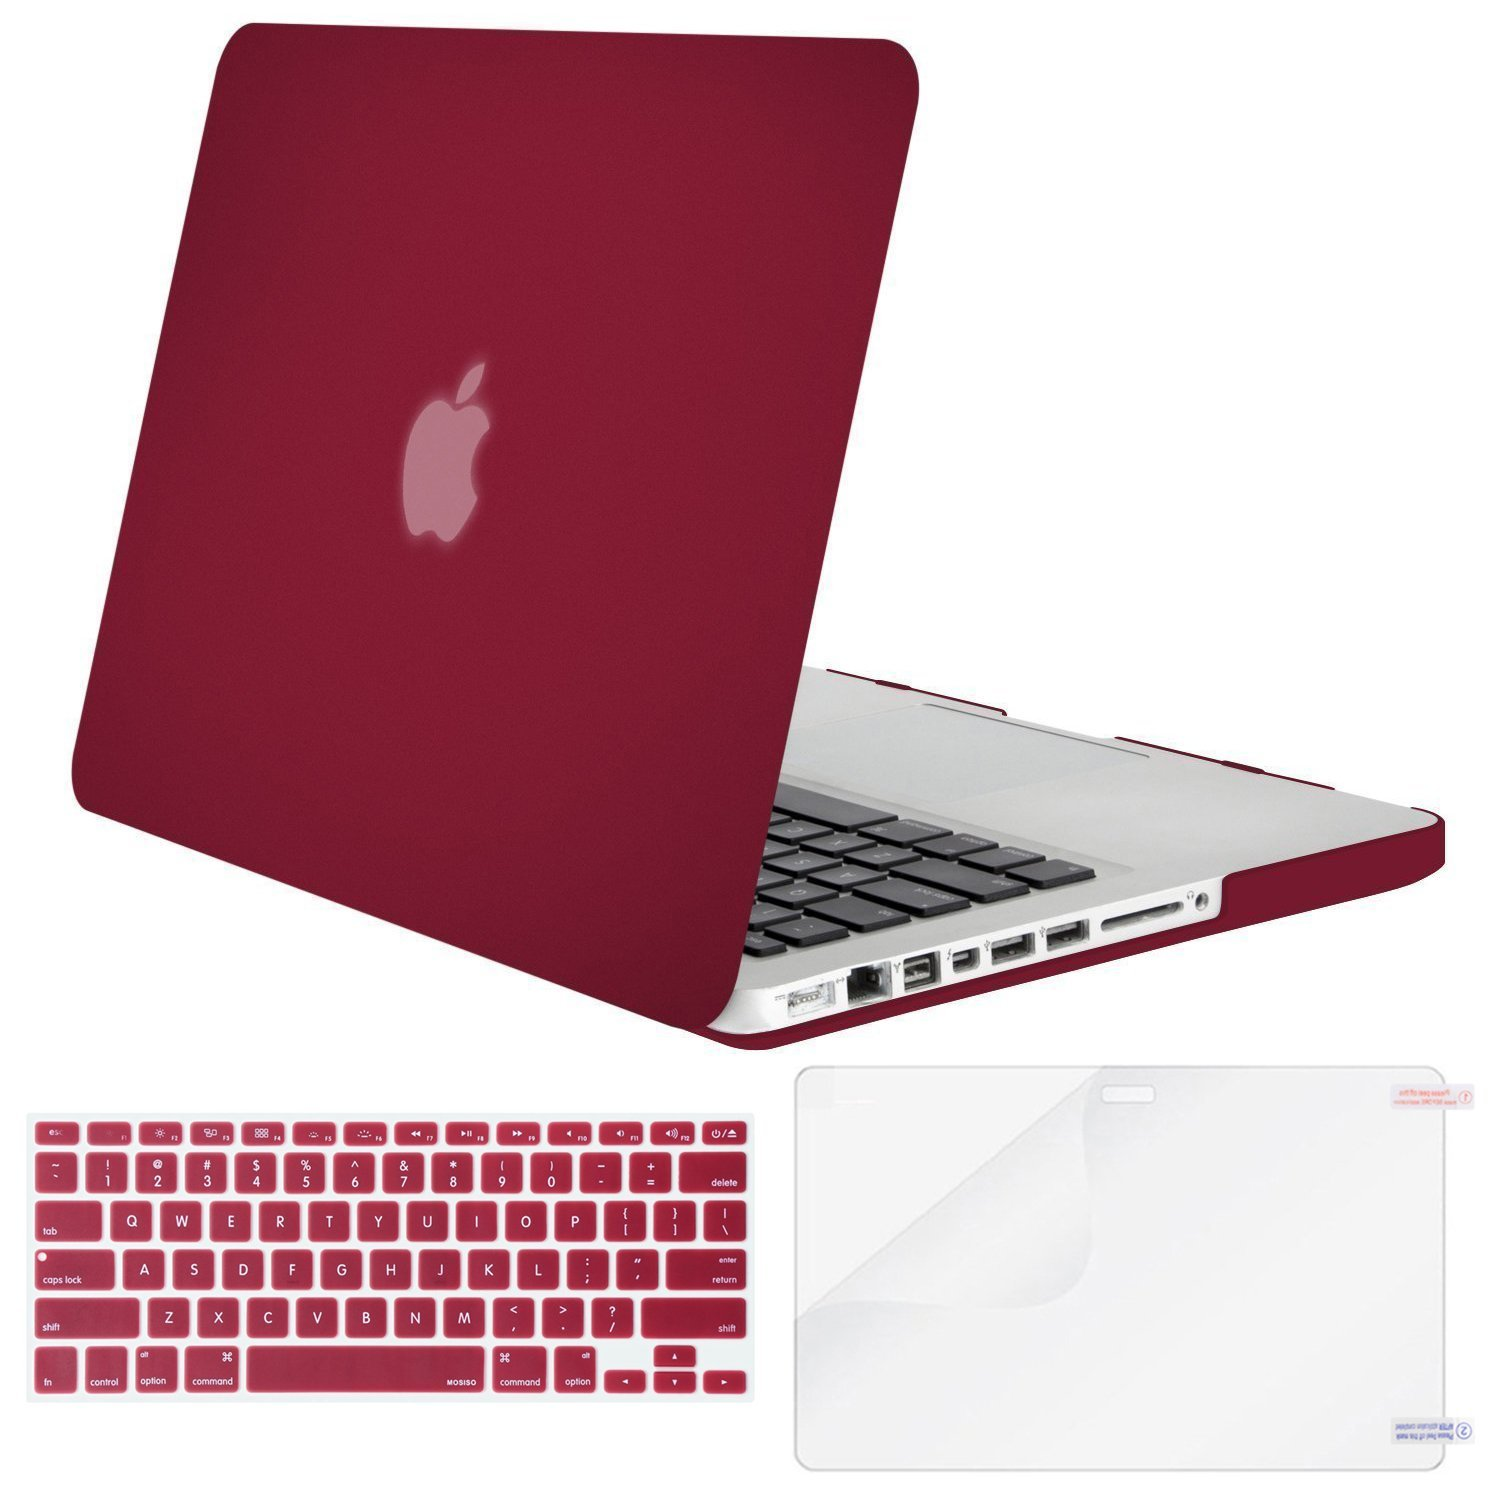 Mosiso 3 in 1 MacBook Pro 13 CD ROM A1278 Plastic Hard Case with Keyboard Cover Only for Old MacBook Pro 13'' (Model A1278),Wine Red